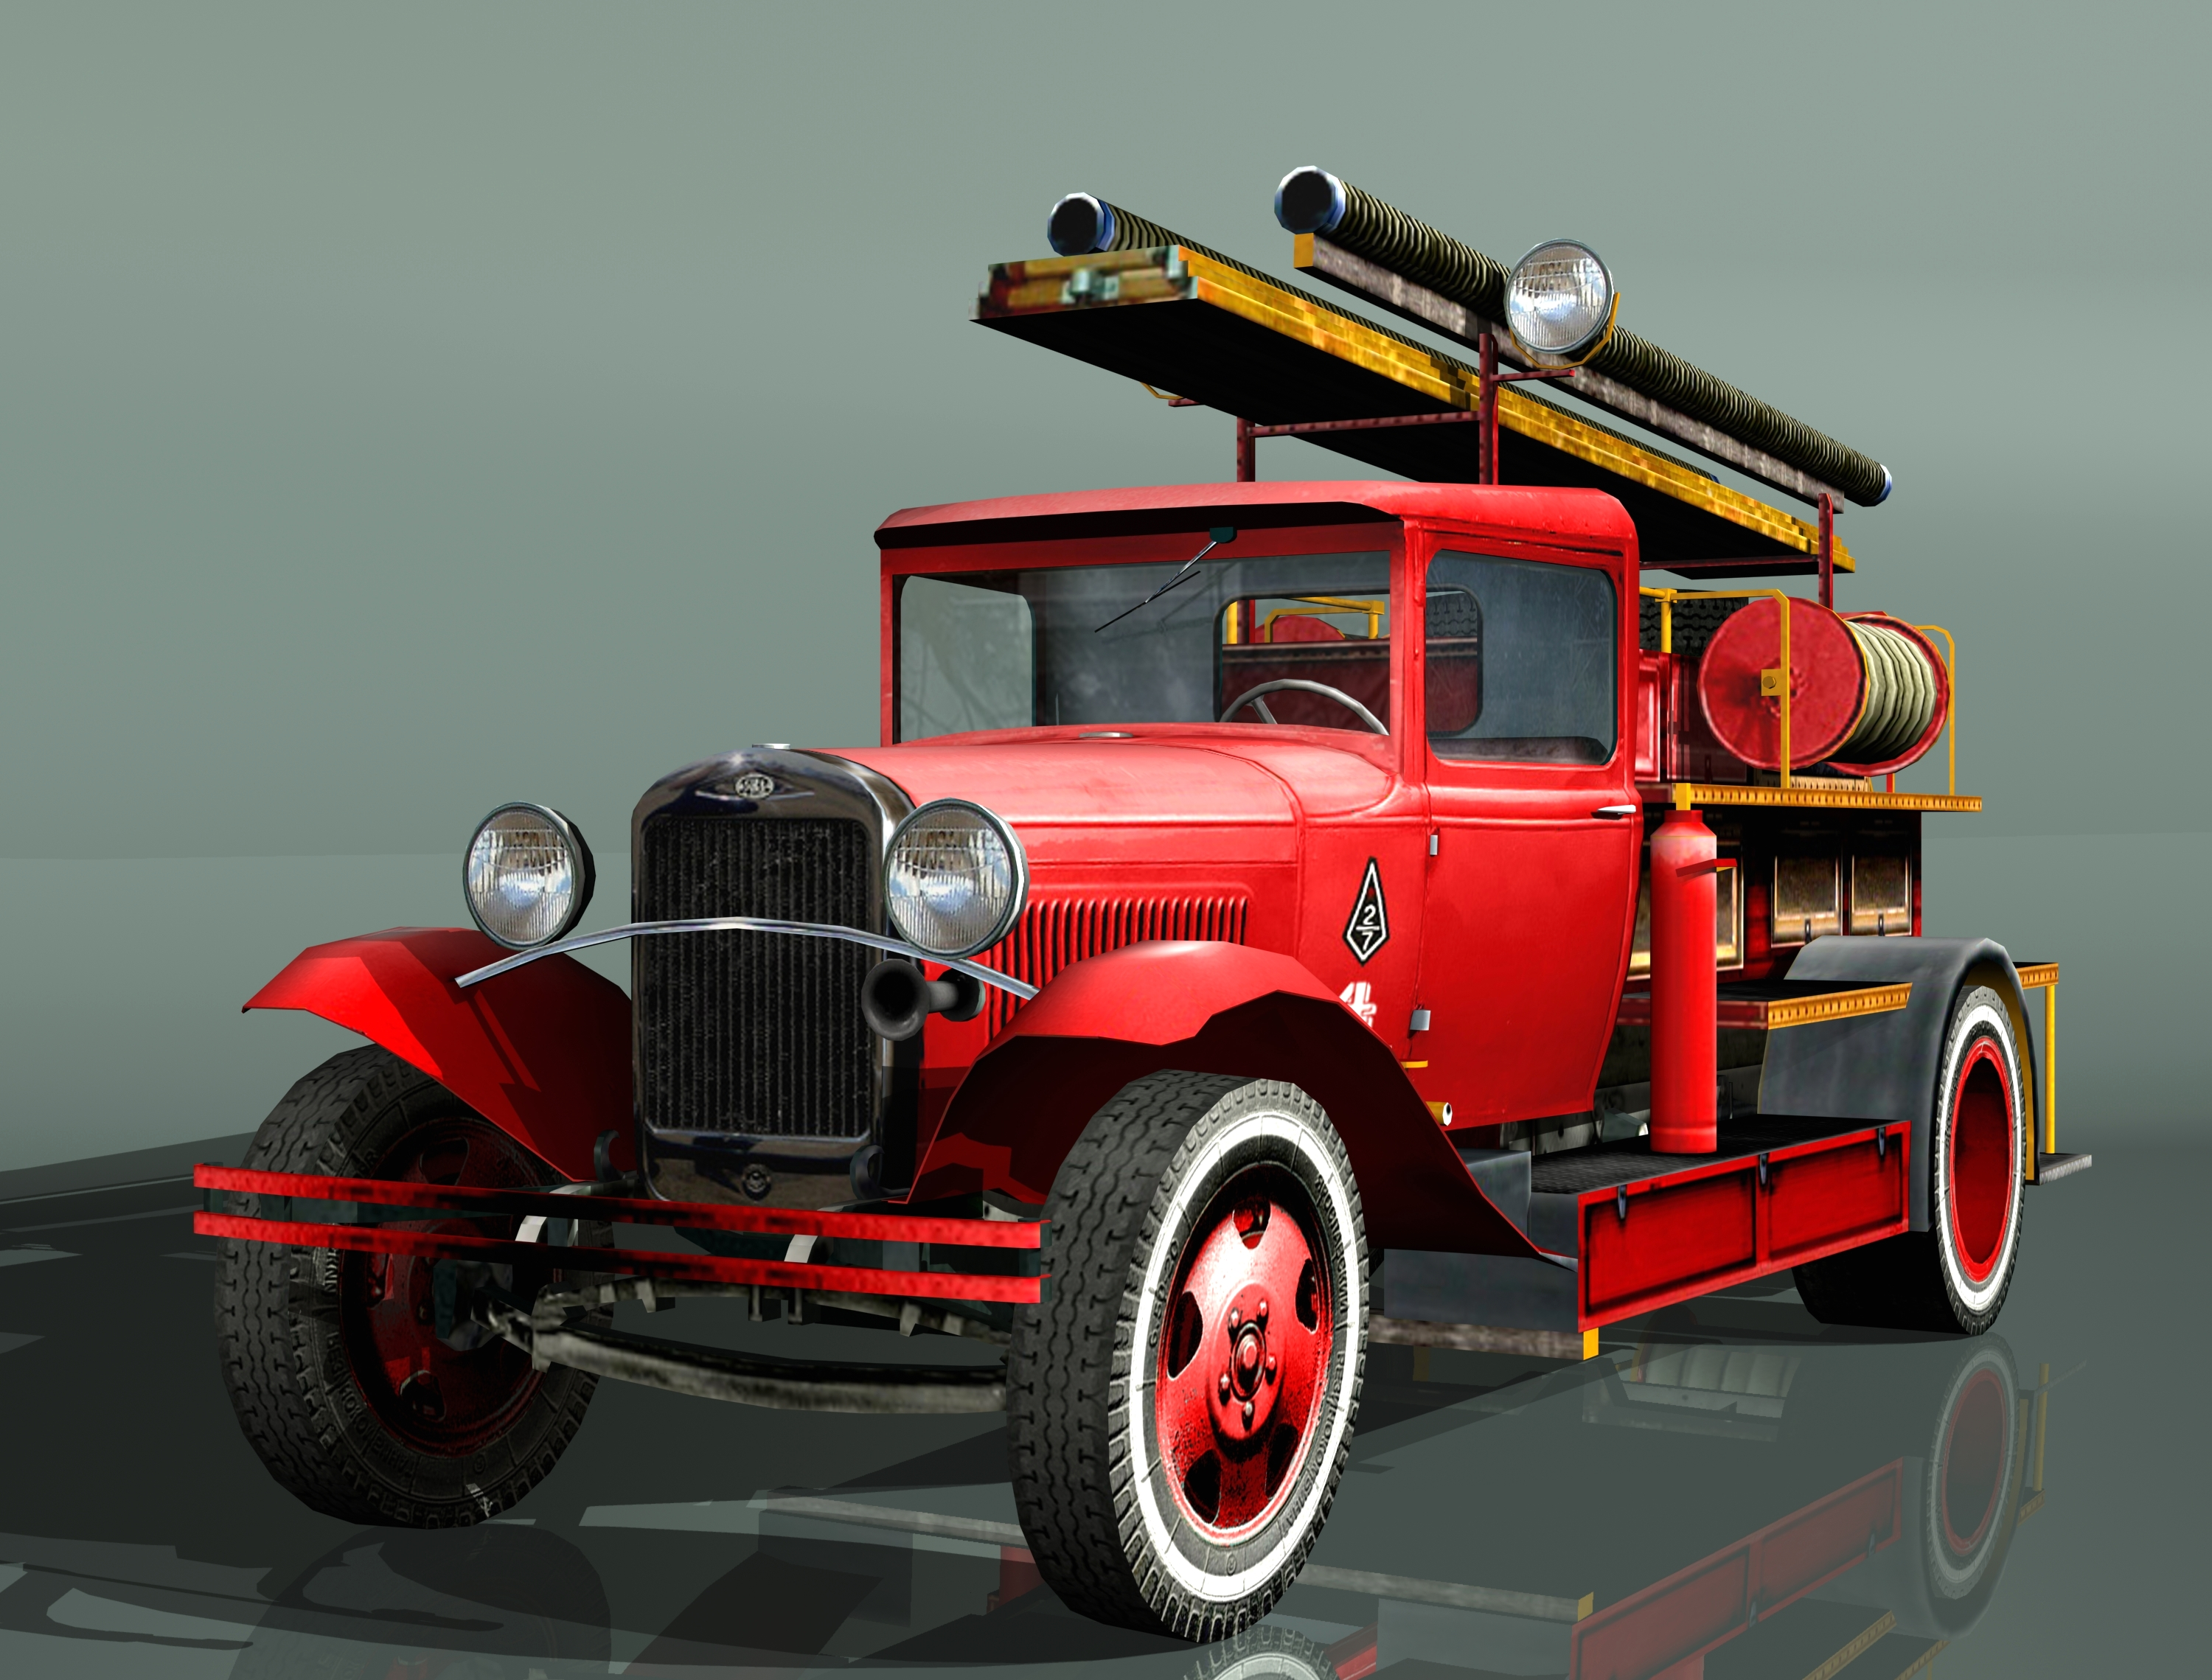 fire truck type pmg-1 3d model 3ds max fbx 204631